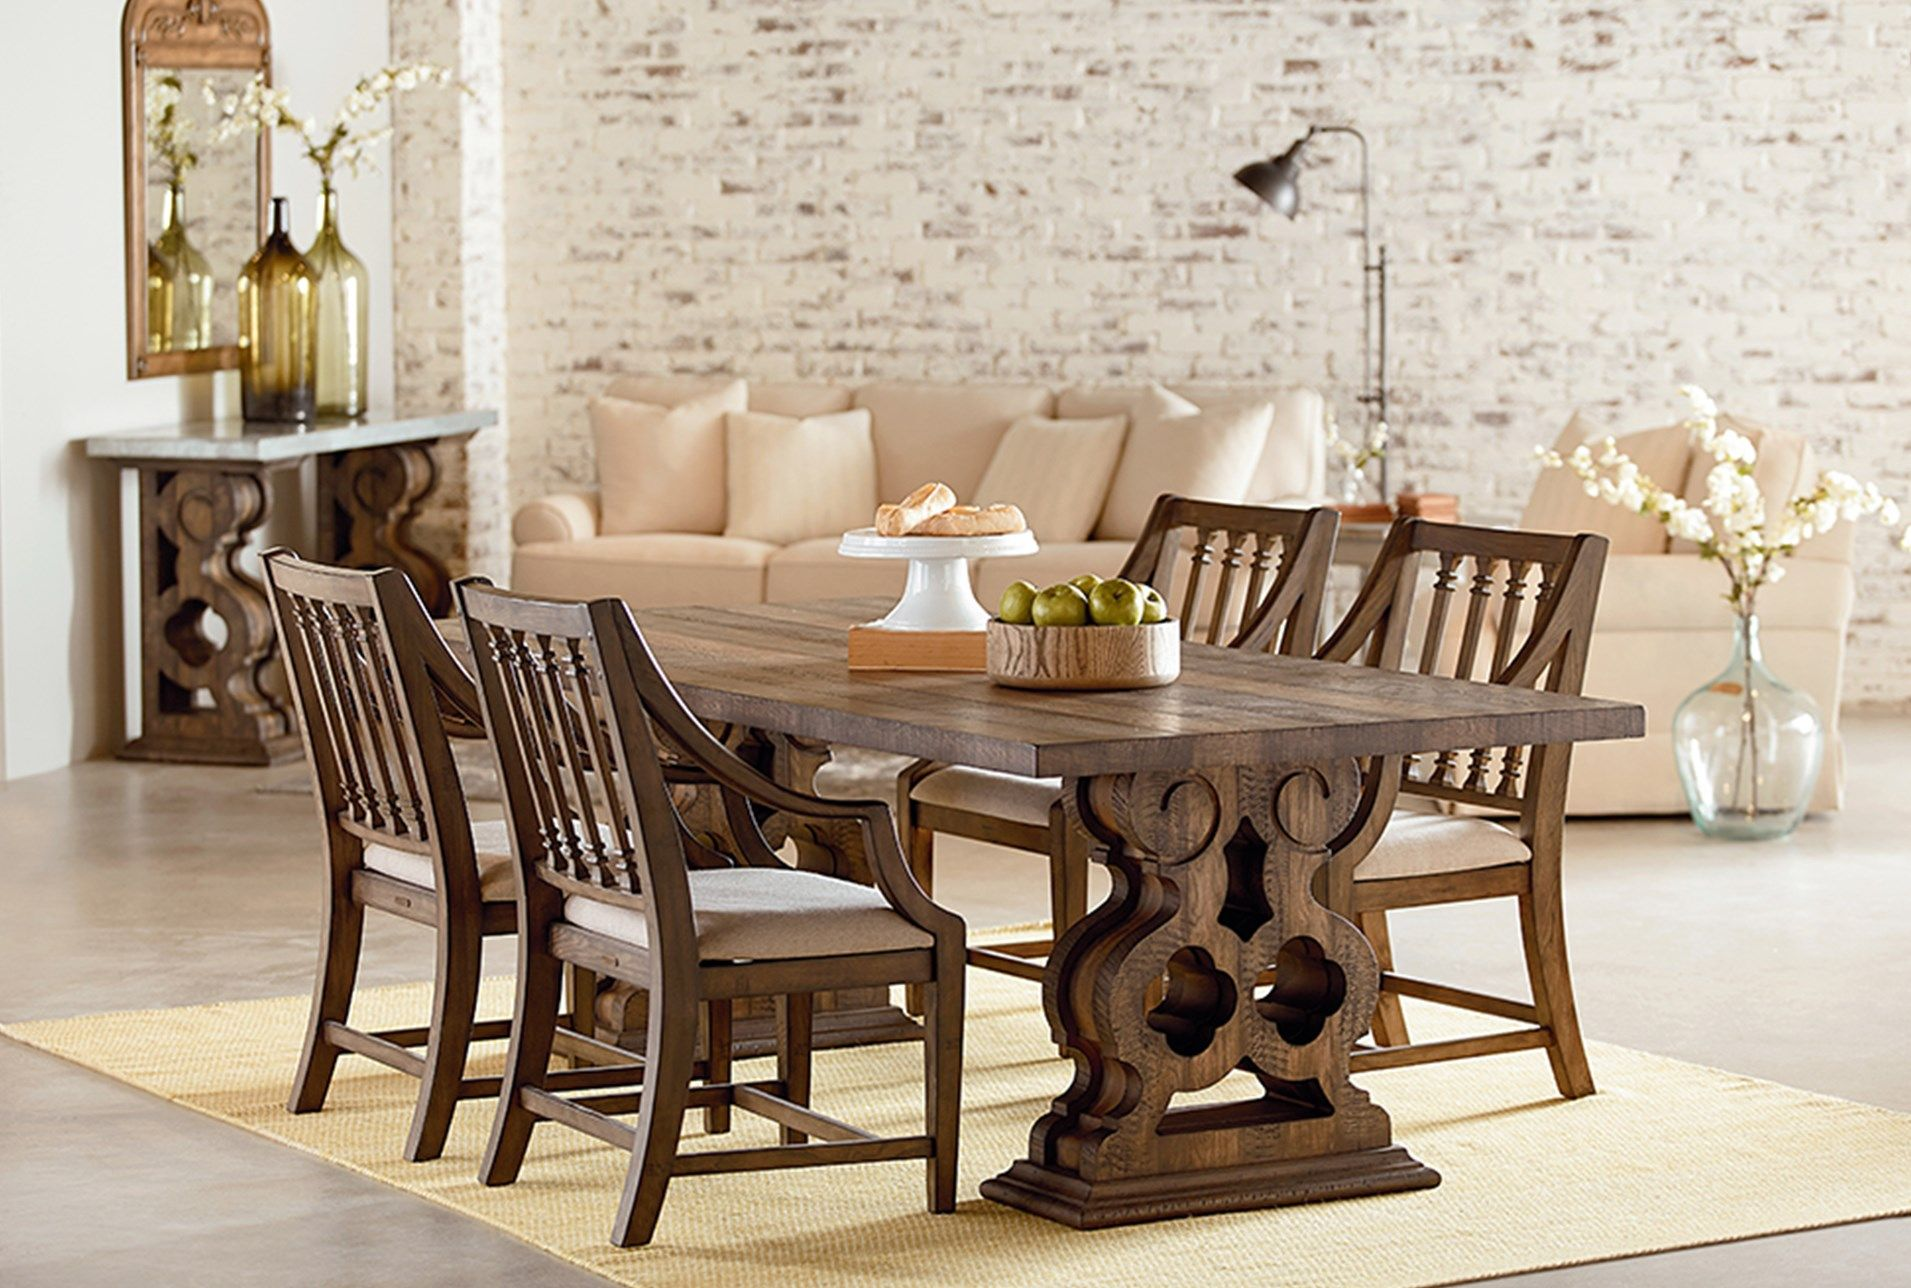 Magnolia Home Double Pedestal Dining Table By Joanna Gaines